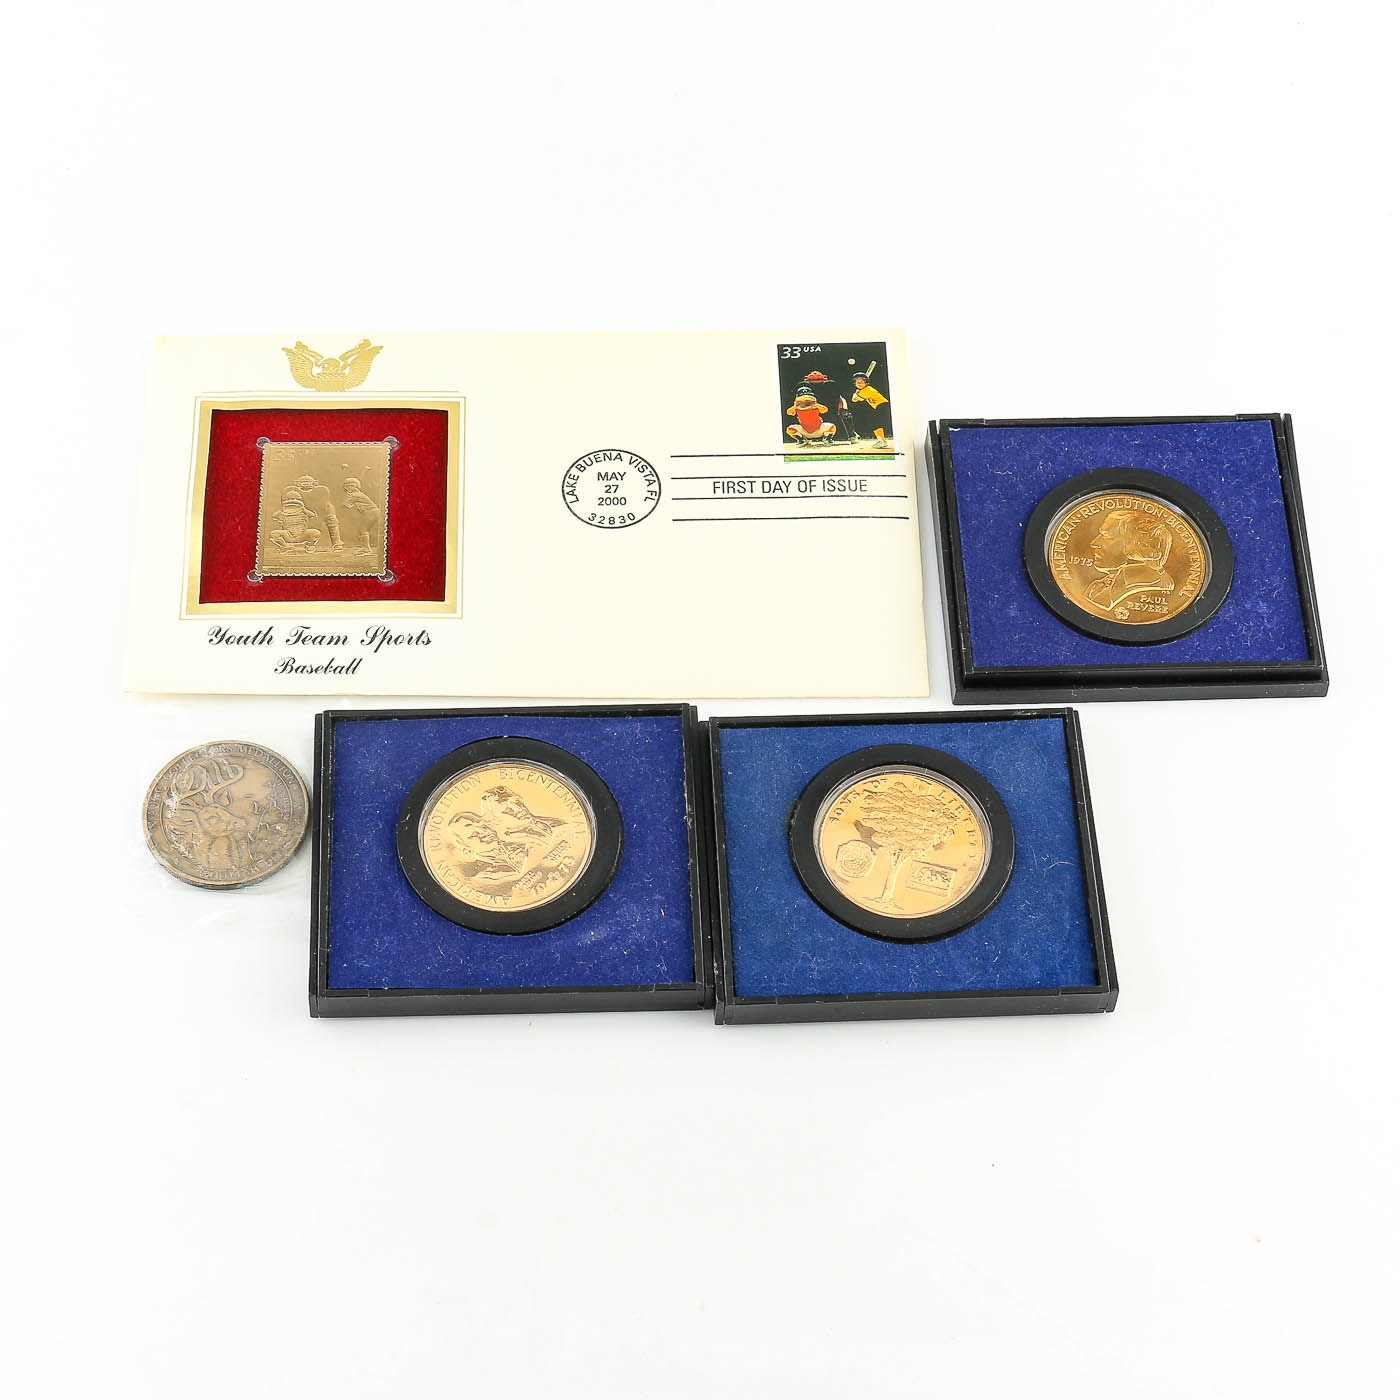 Assortment of Various Commemorative Medals and a Gold Stamp First Day Cover